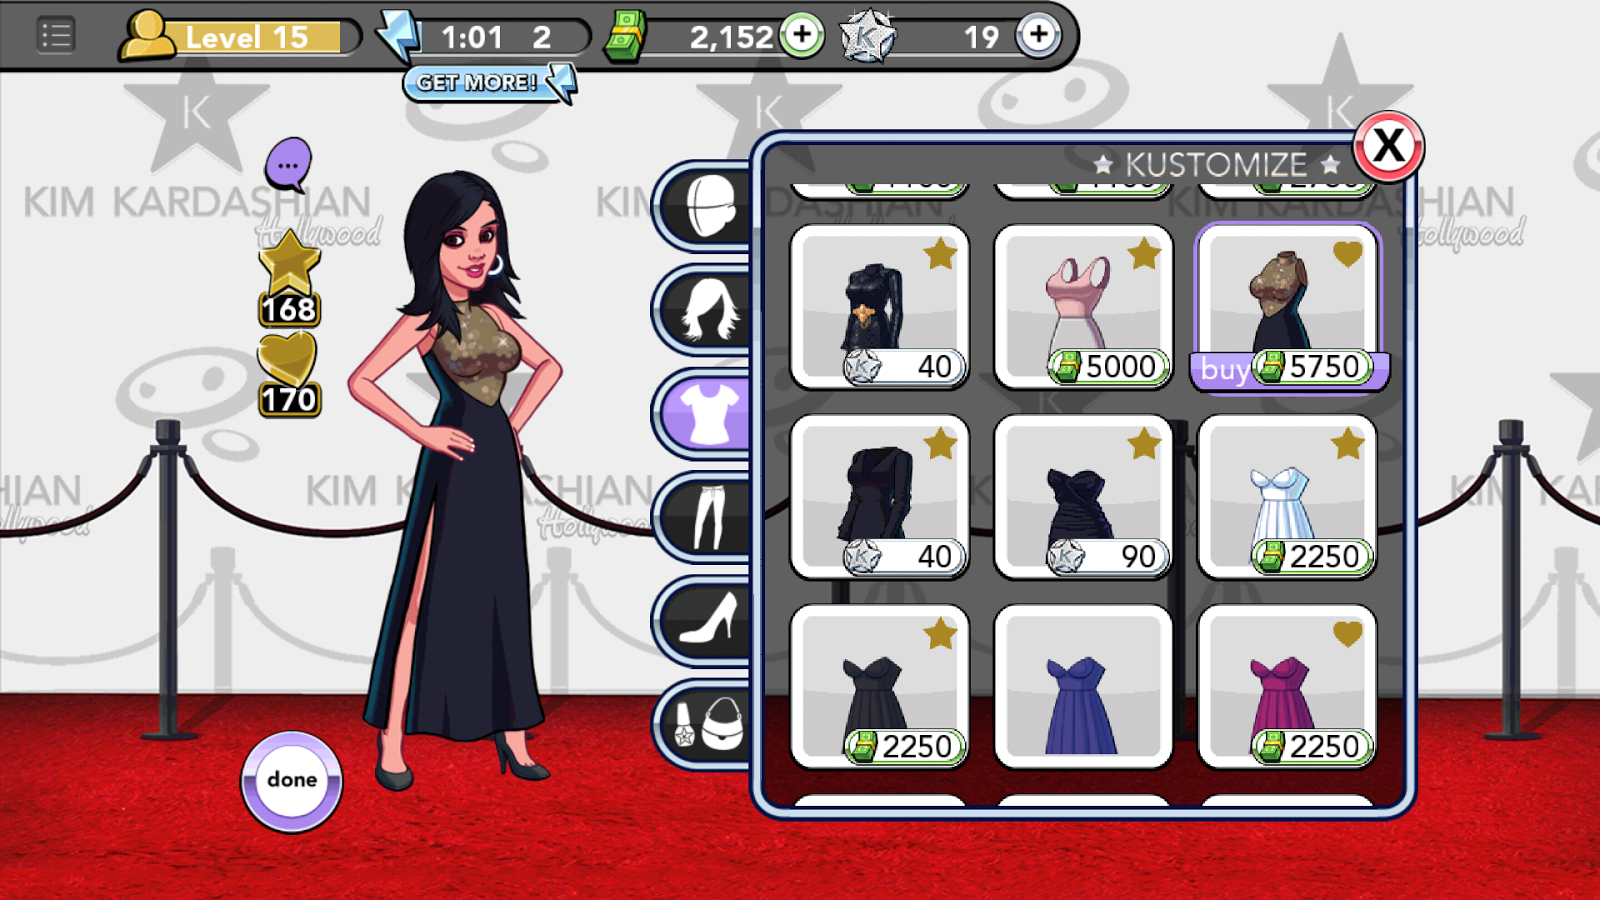 Kim Kardashian: Hollywood game - Kustomize screen for buying and changing clothes